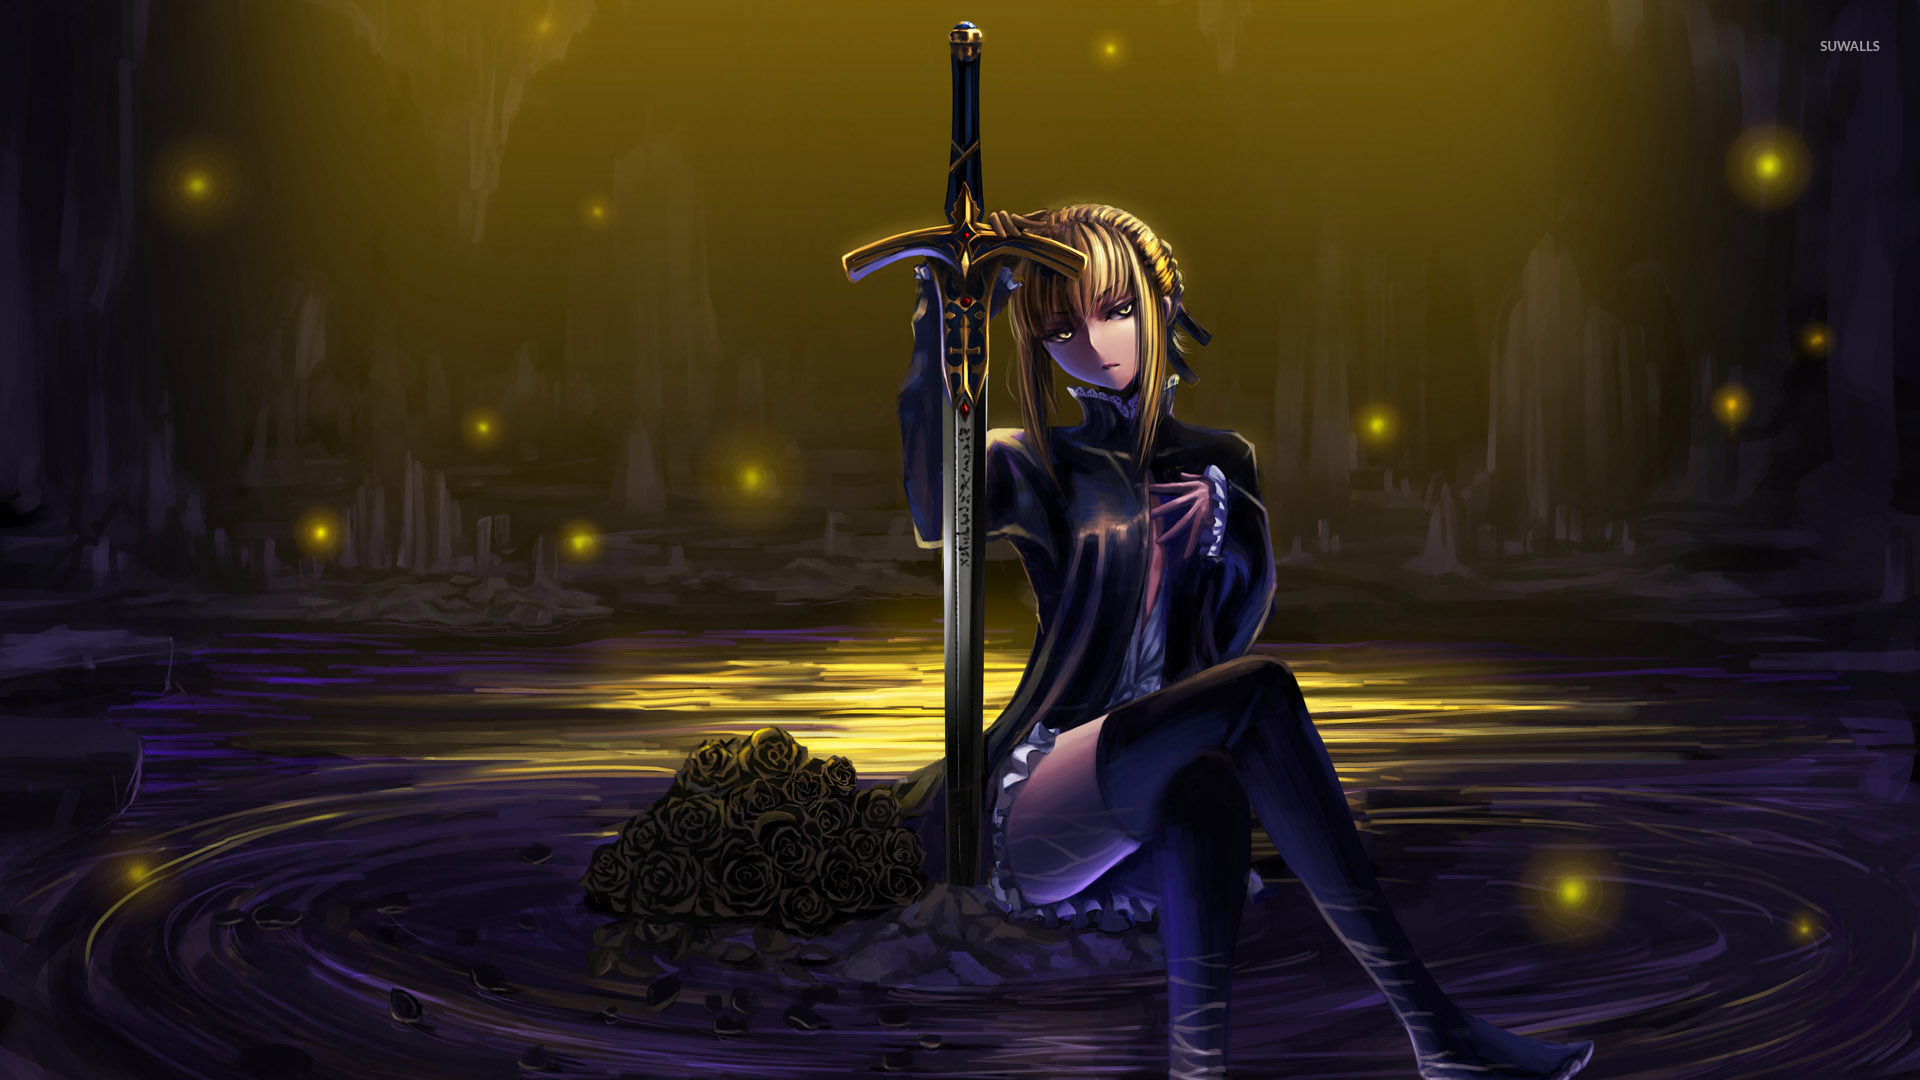 Saber On A Rock Fate Stay Night Wallpaper Anime Wallpapers 51059